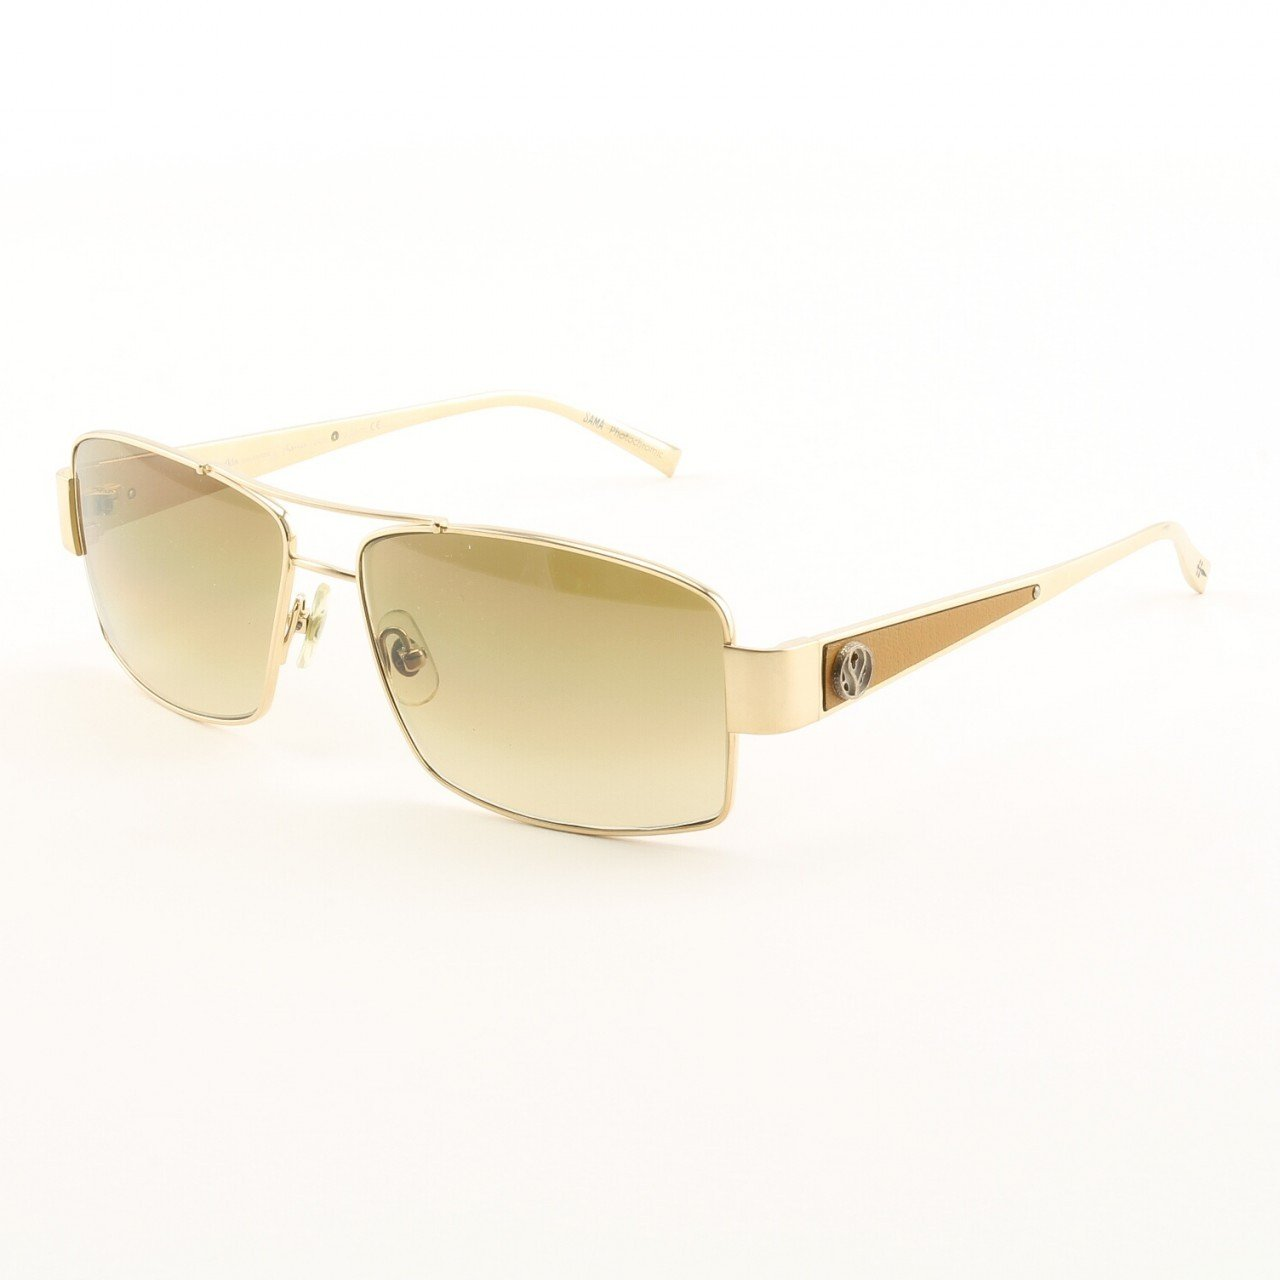 Loree Rodkin Jason Sunglasses by Sama Col. Gold with Brown Lenses, Leather and Sterling Silver